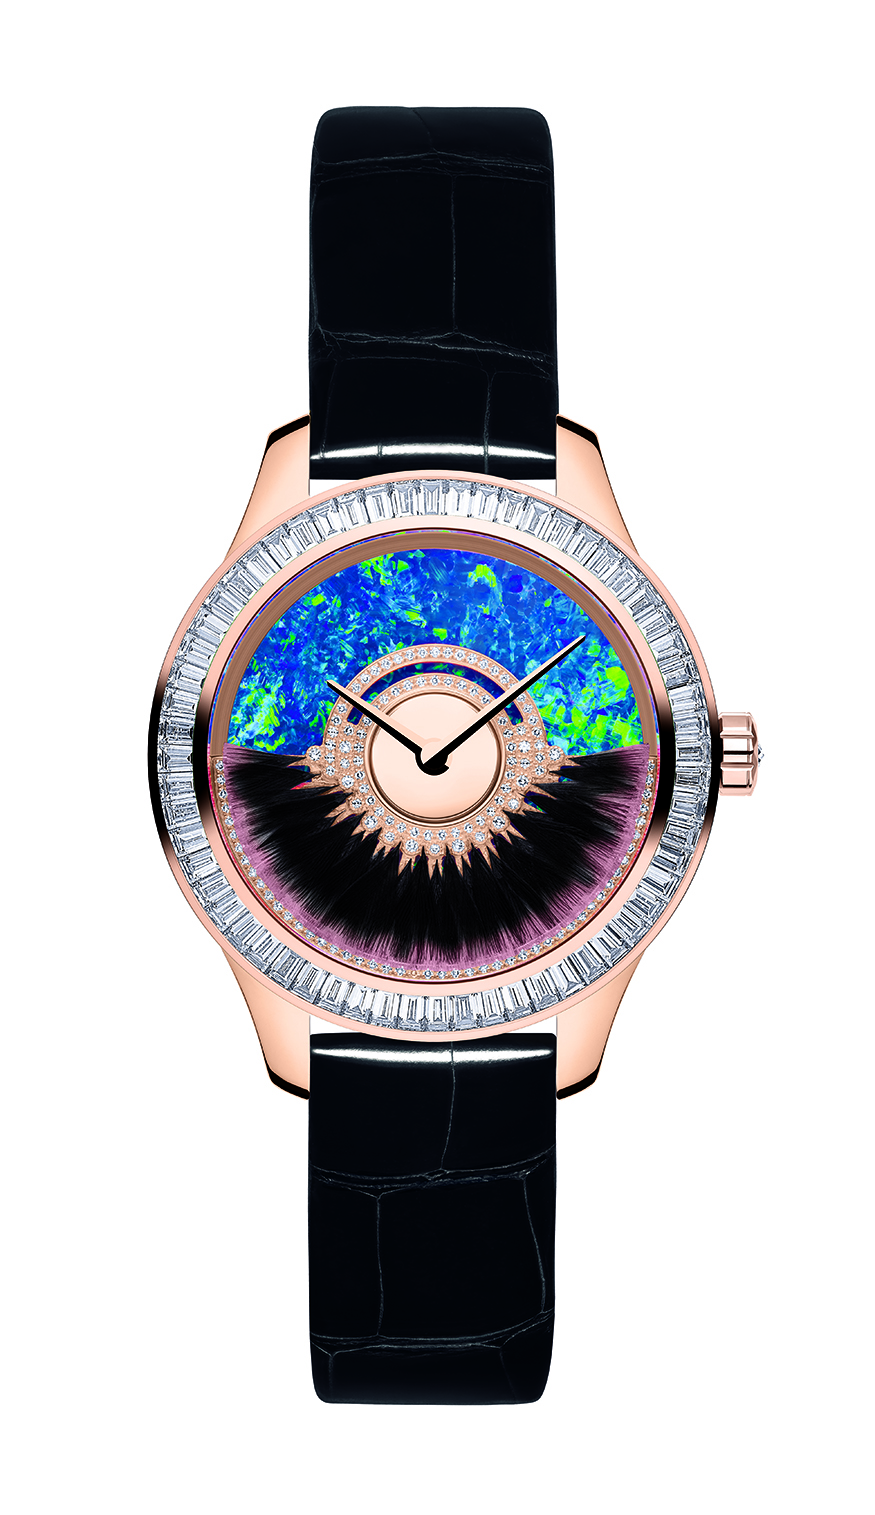 Fantastic beasts inspire Dior Grand Bal Supernatural watches